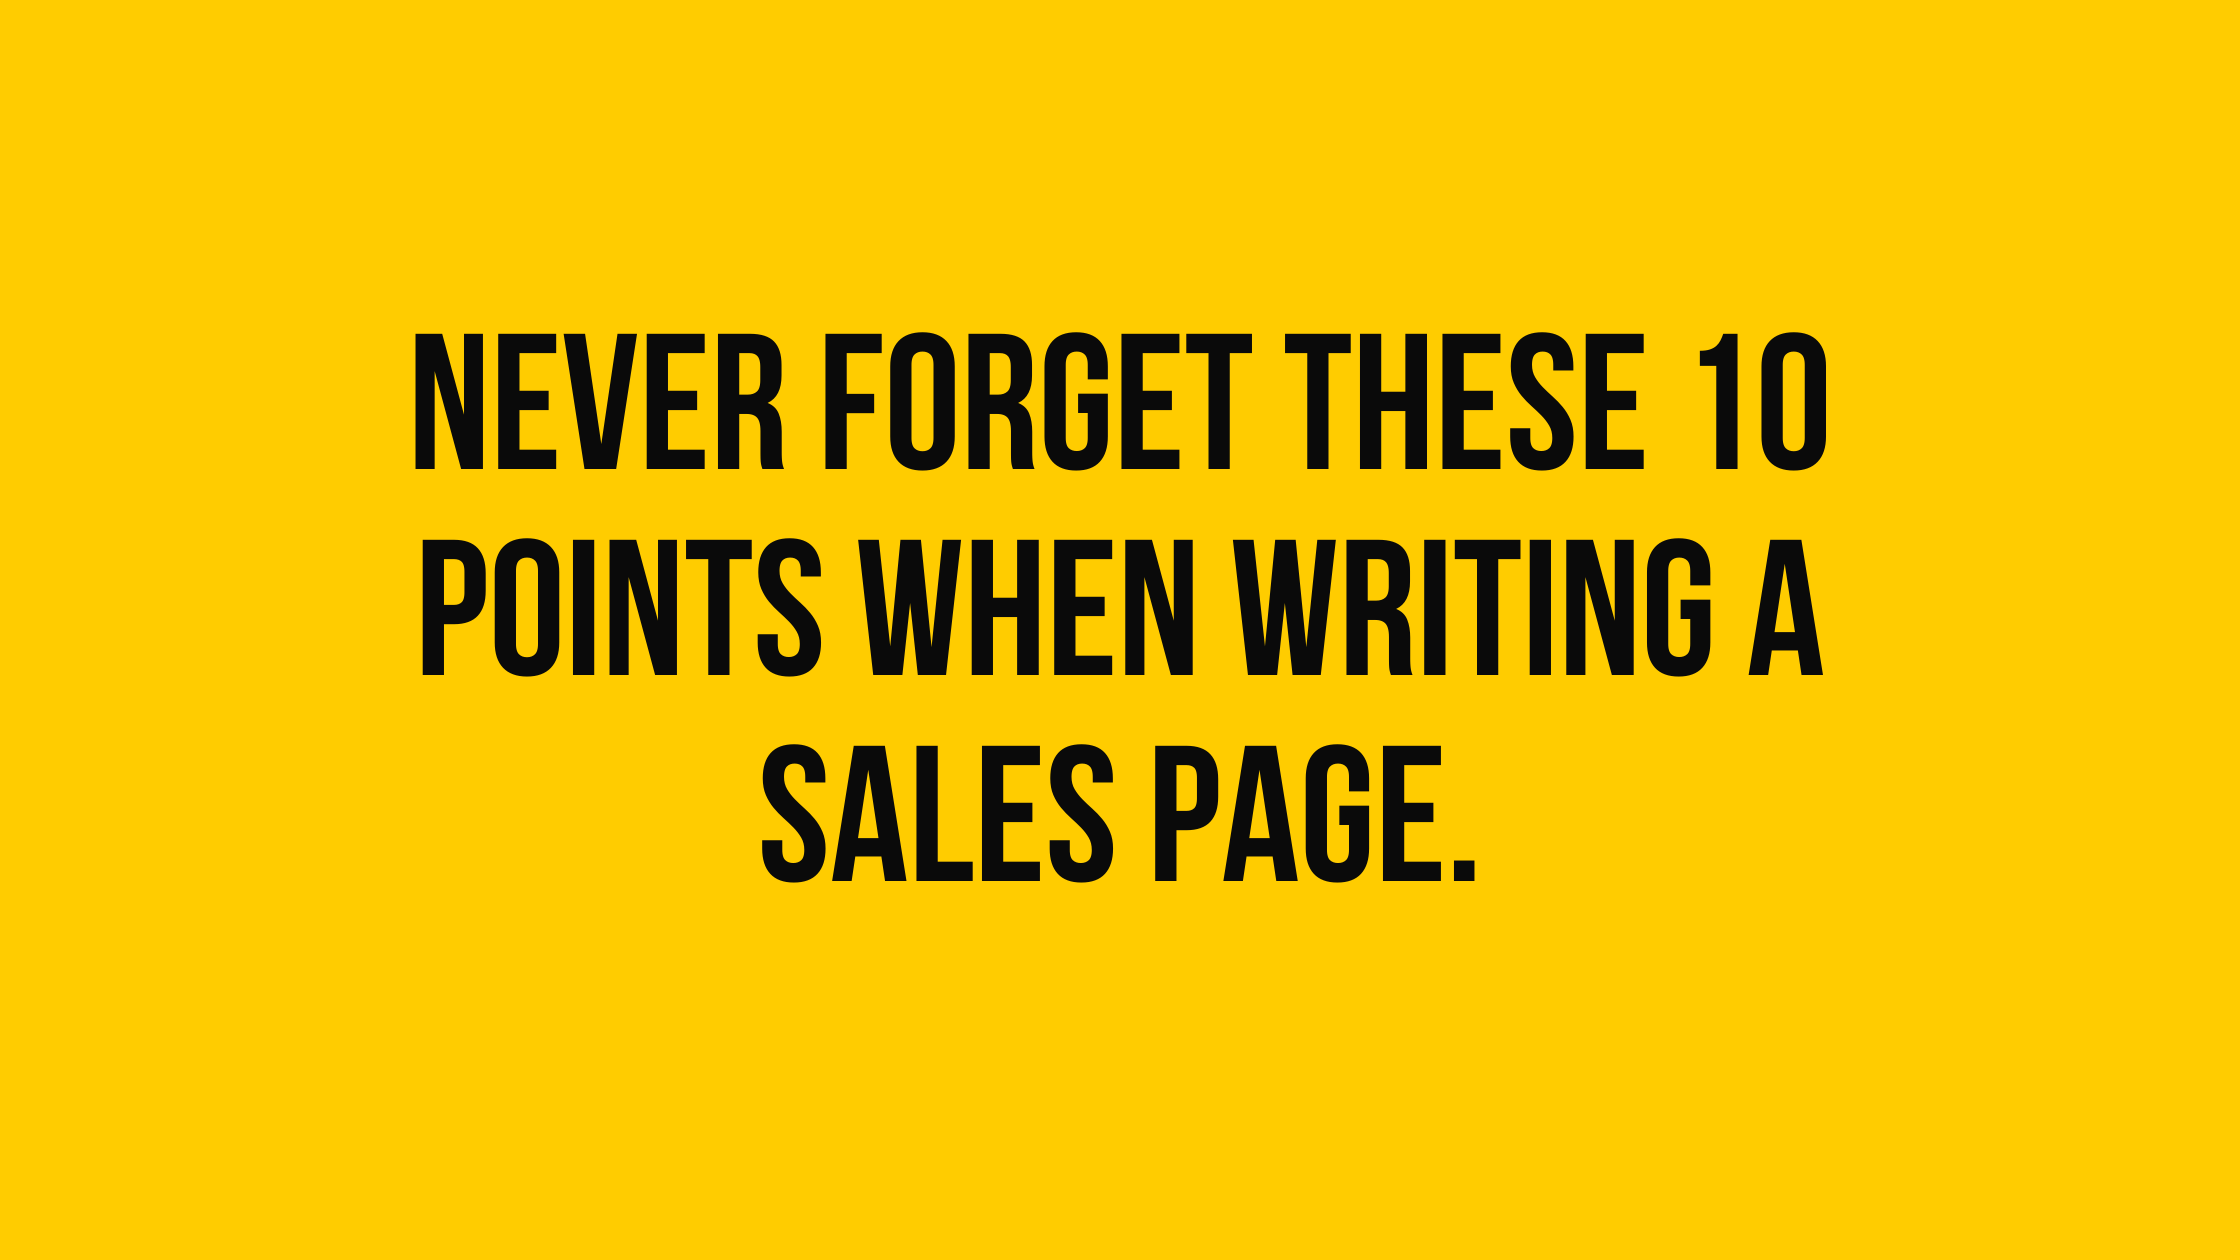 Never forget these 10 points when writing a sales page.